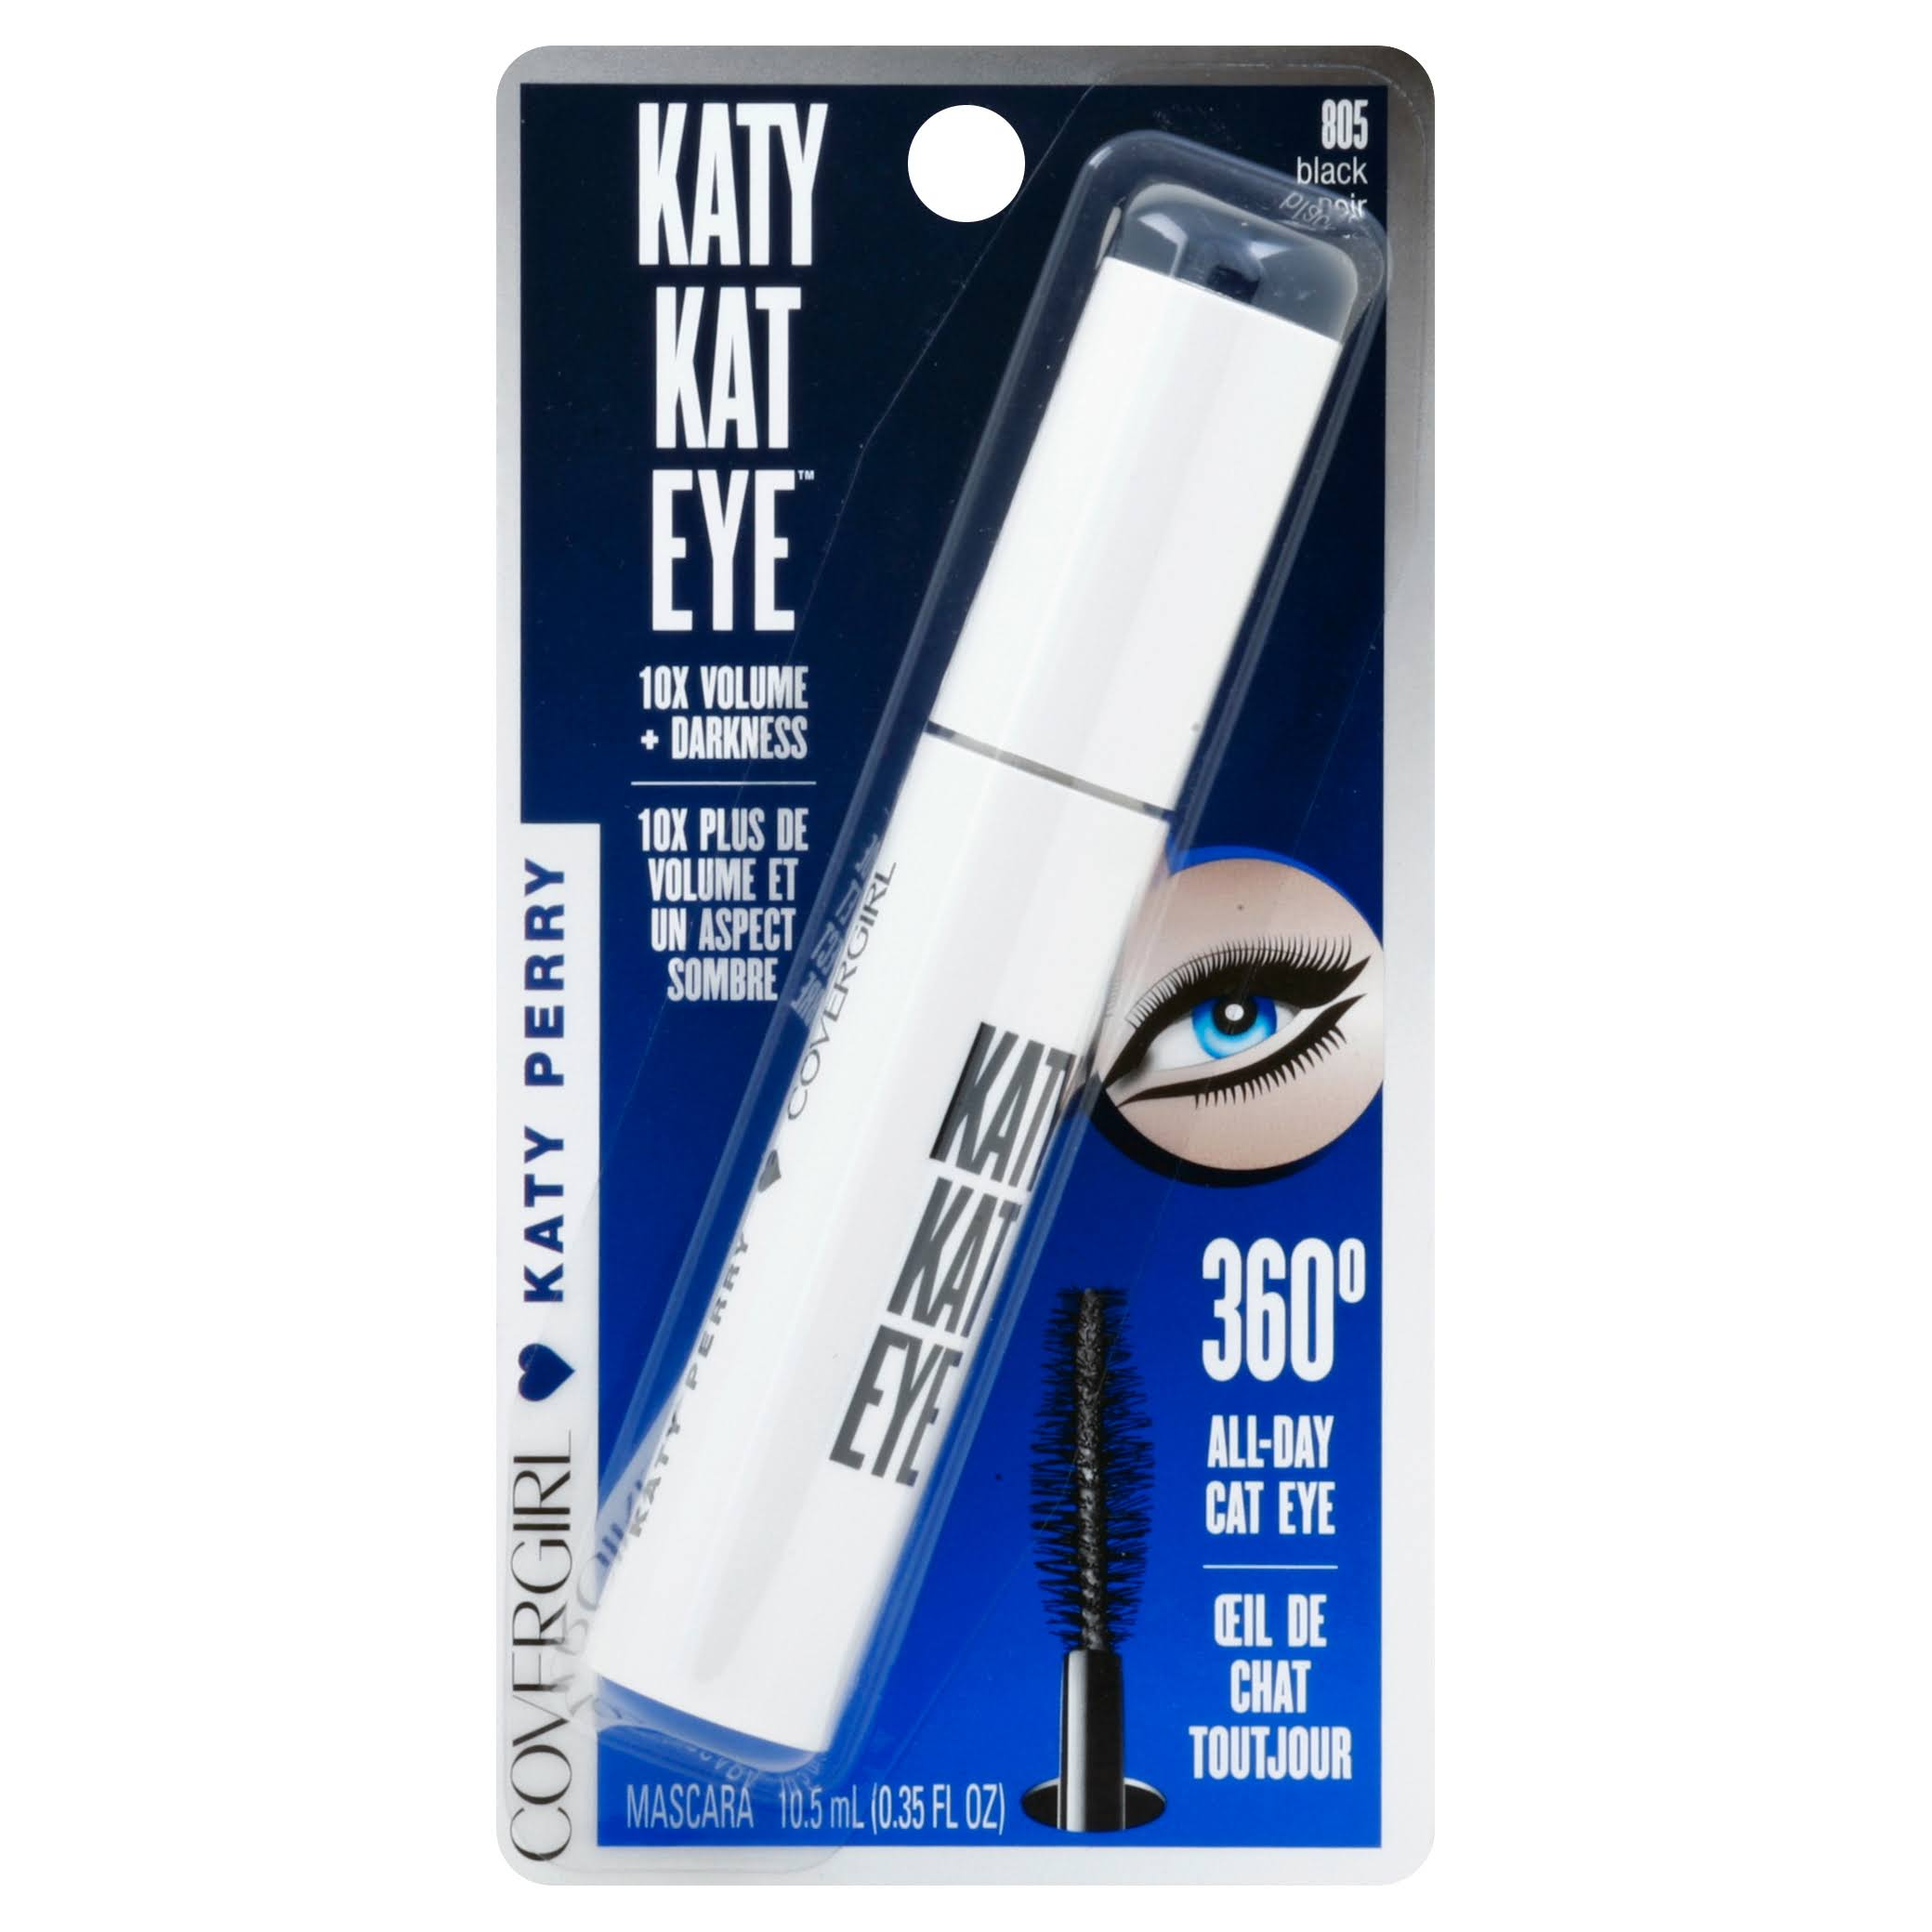 Cover Girl Katy Kat Eye Mascara - Black Noir 805